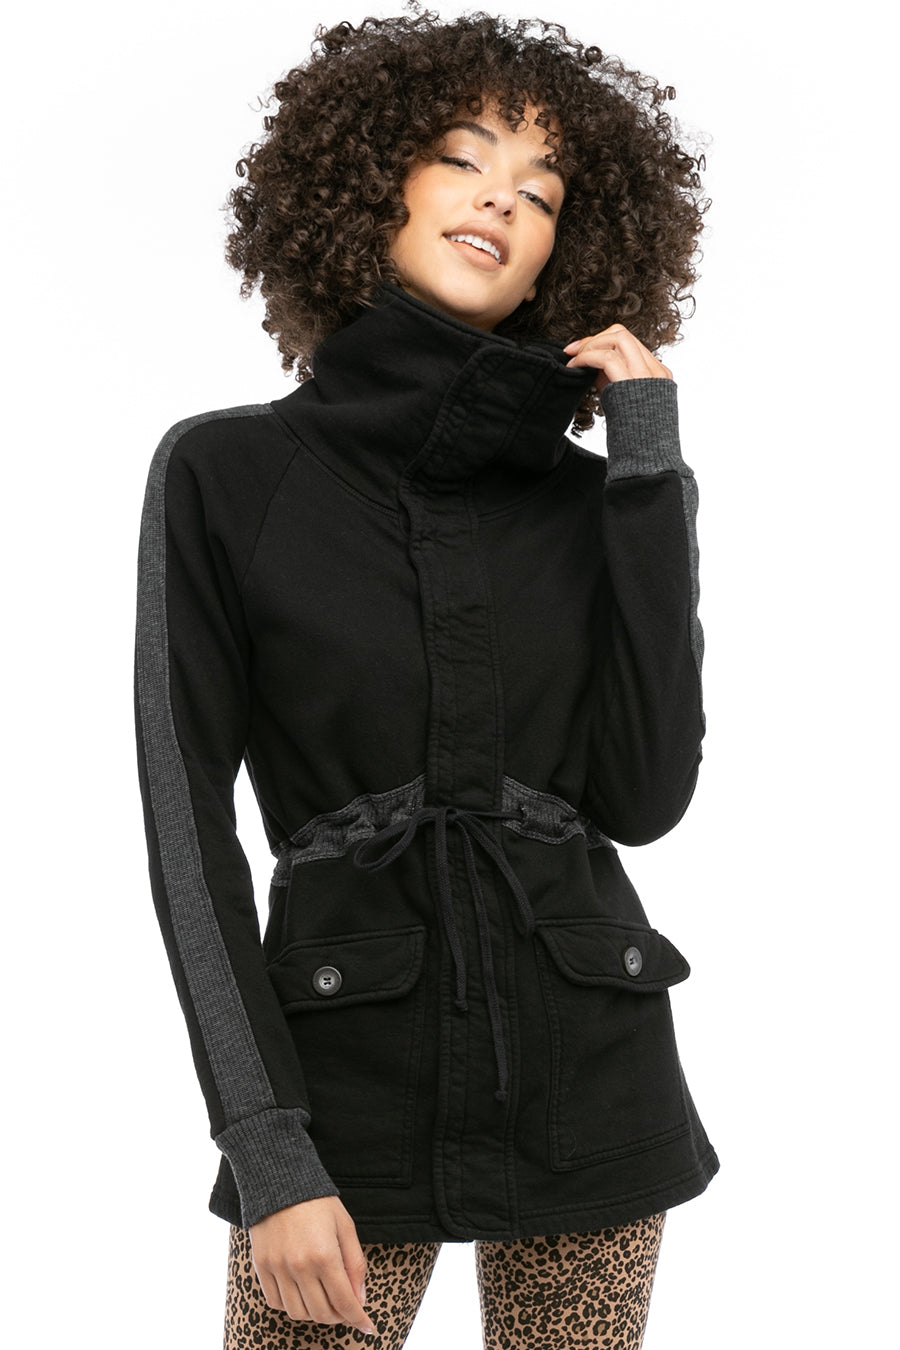 Hard Tail Forever Ribbed Cozy Jacket - Black - S